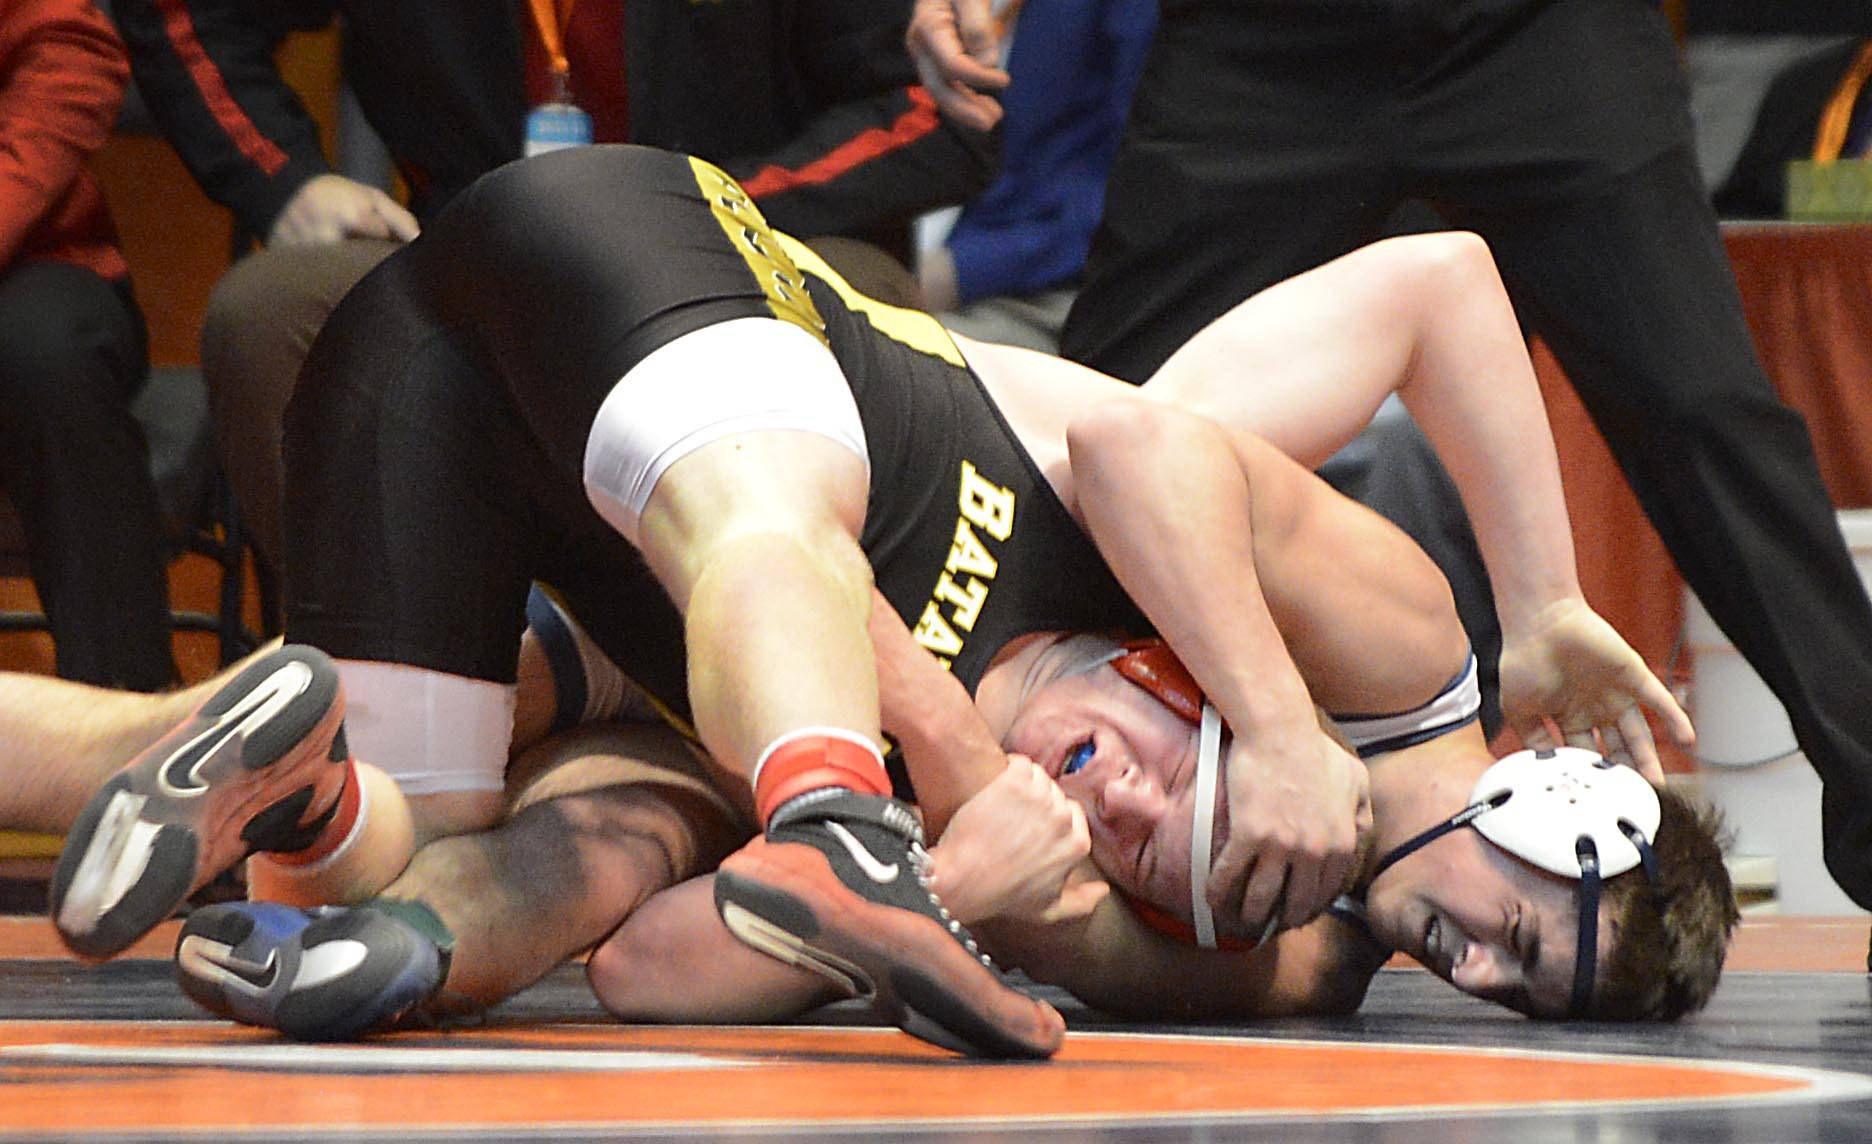 John Starks/jstarks@dailyherald.comLake Park's Nico Daniello grabs the head of Batavia's Connor McKeehan Friday in quarterfinals of the 220-pound weight class of the 3A IHSA state tournament at the University of Illinois in Champaign.